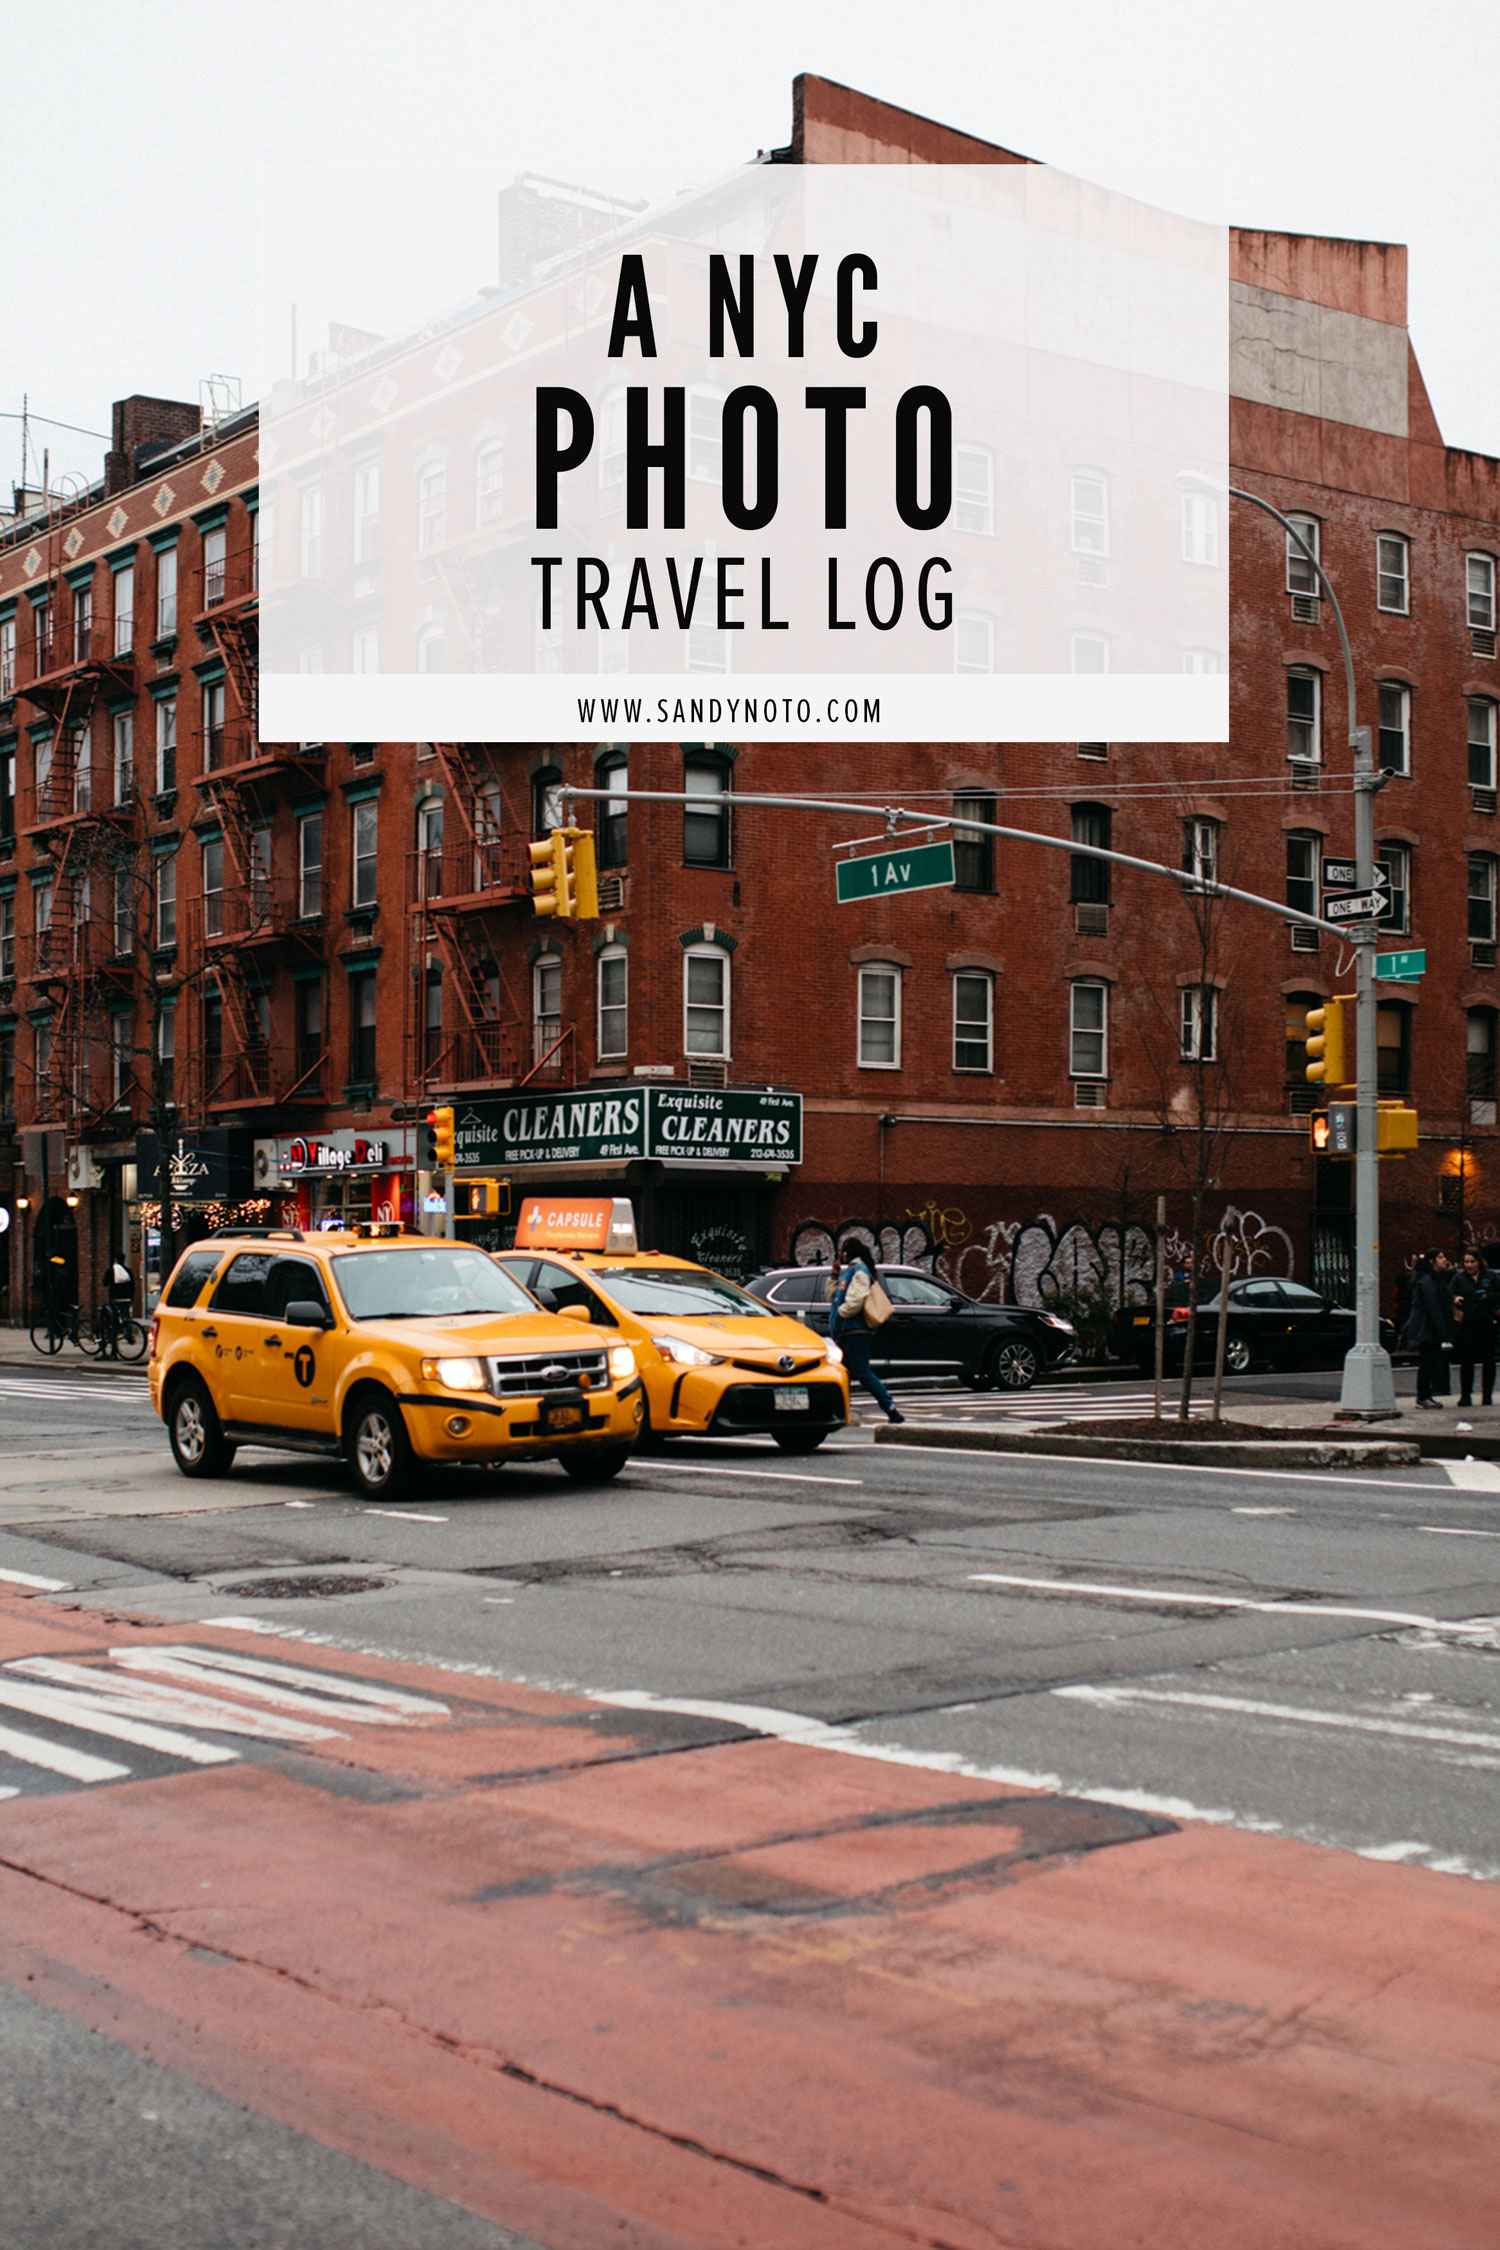 Photographing NYC